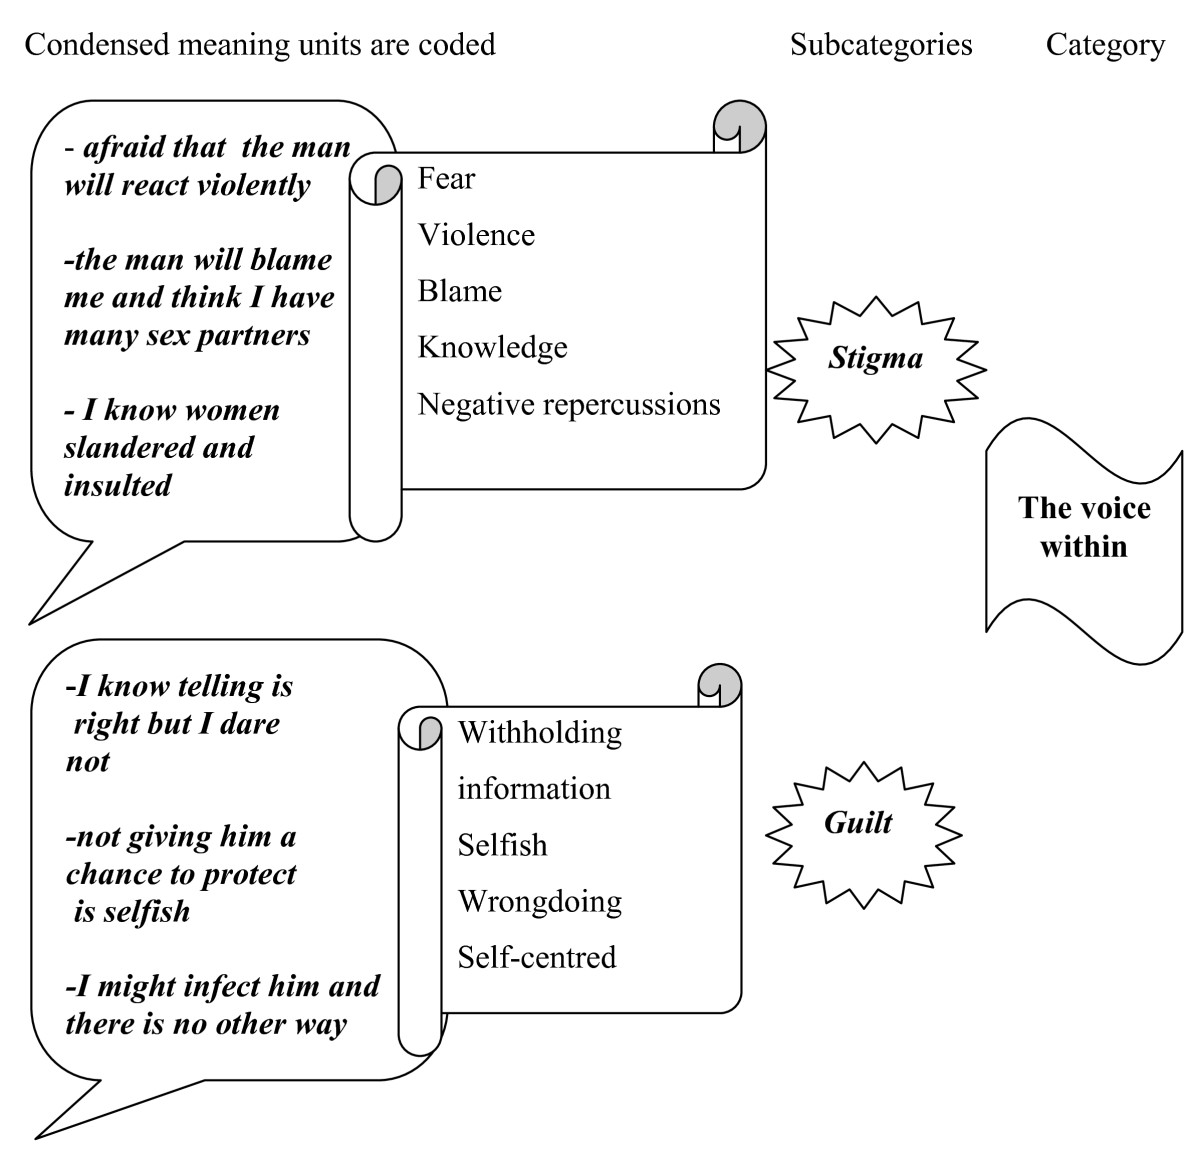 http://static-content.springer.com/image/art%3A10.1186%2F1472-6874-10-13/MediaObjects/12905_2009_Article_191_Fig1_HTML.jpg